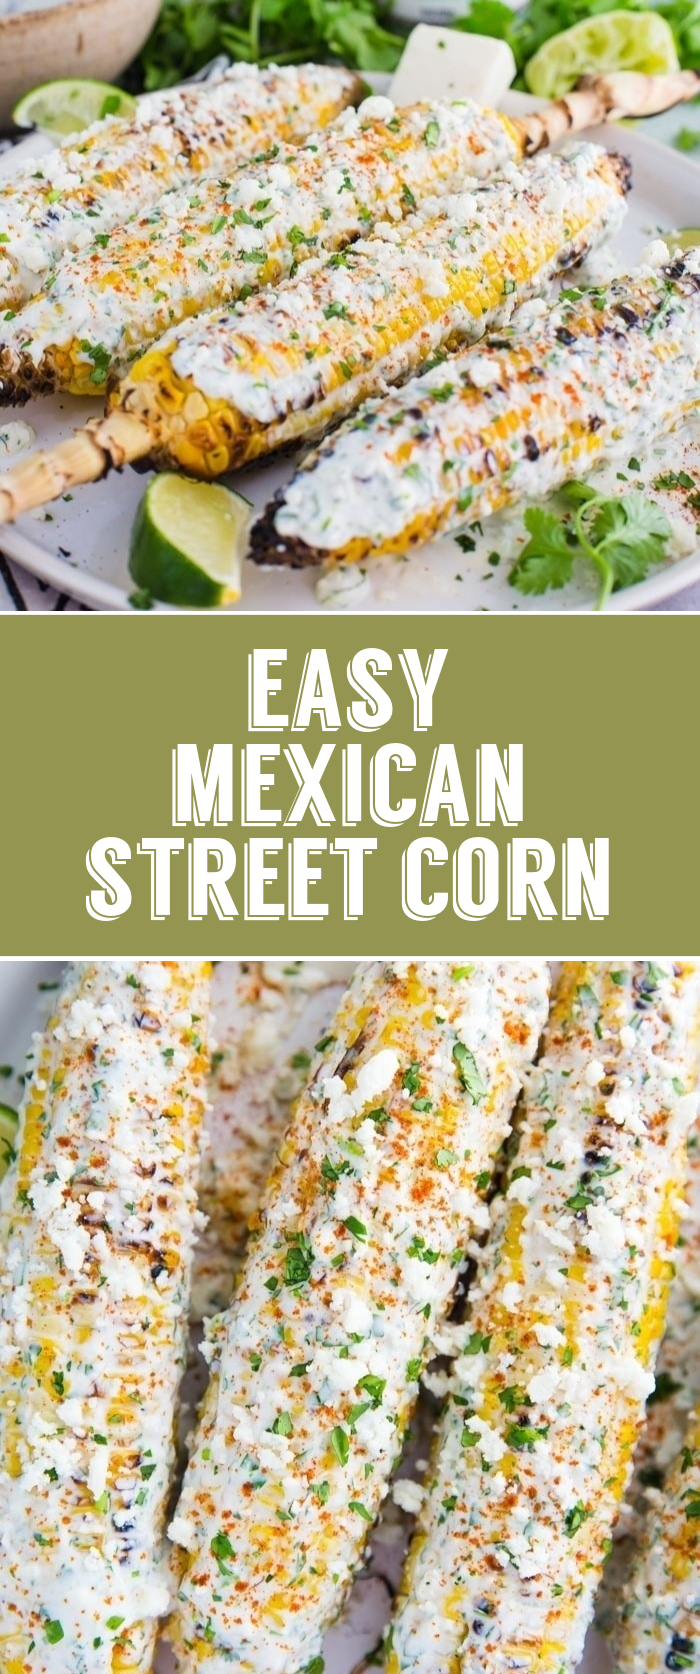 Easy Mexican Street Corn this street corn is super easy to make on the grill and is the perfect side dish that everyone will enjoy